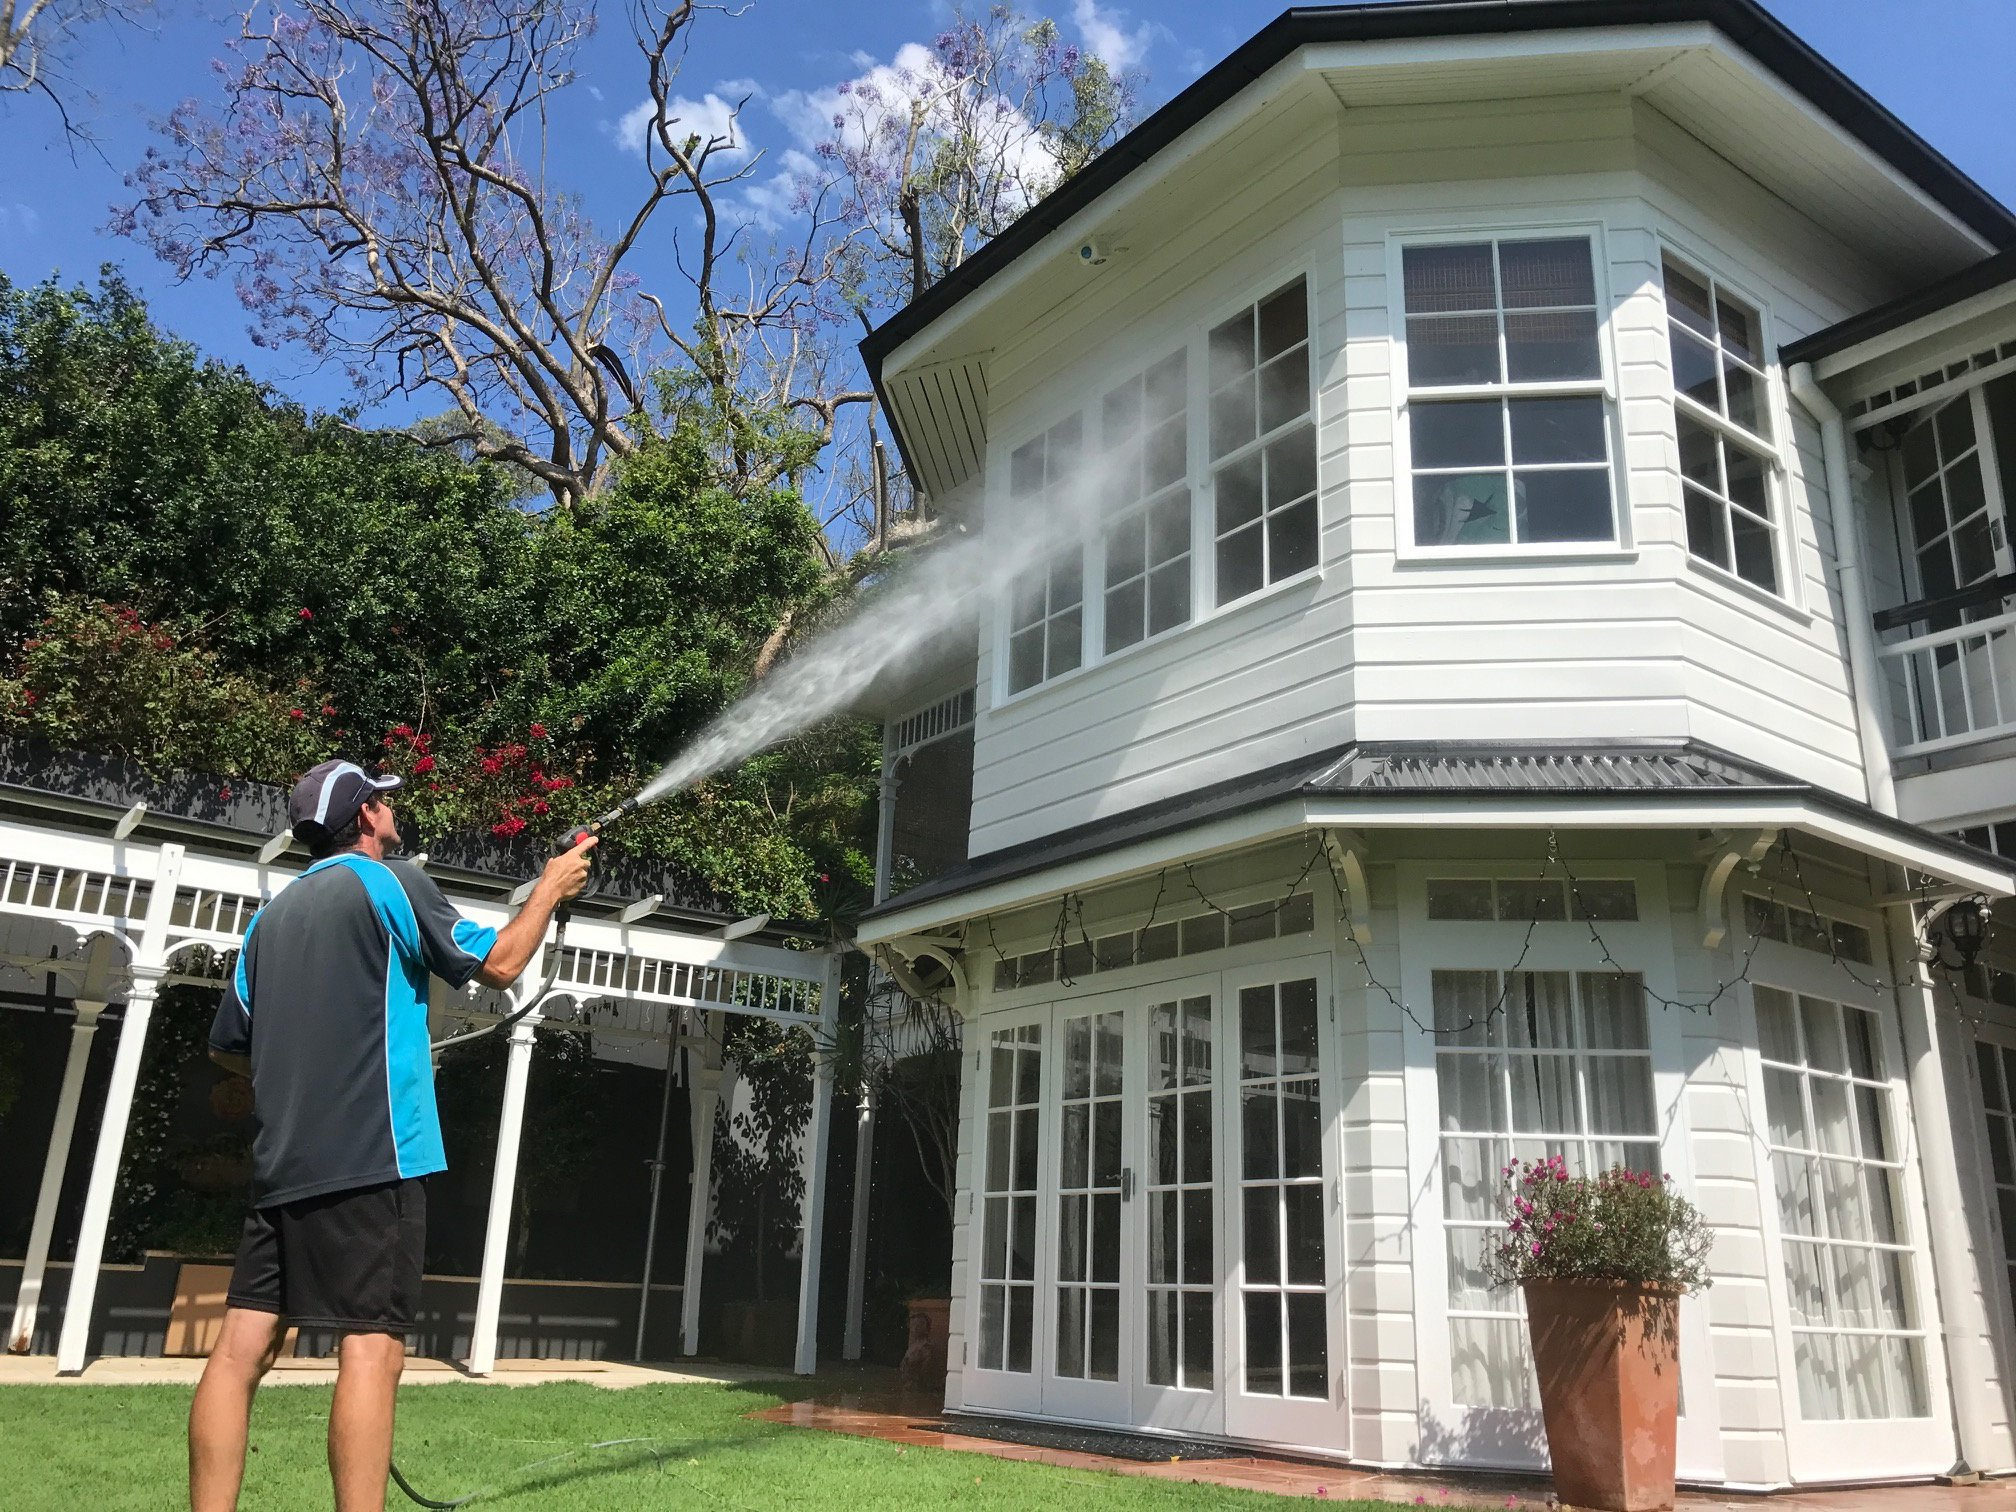 Narangba Roof washing services